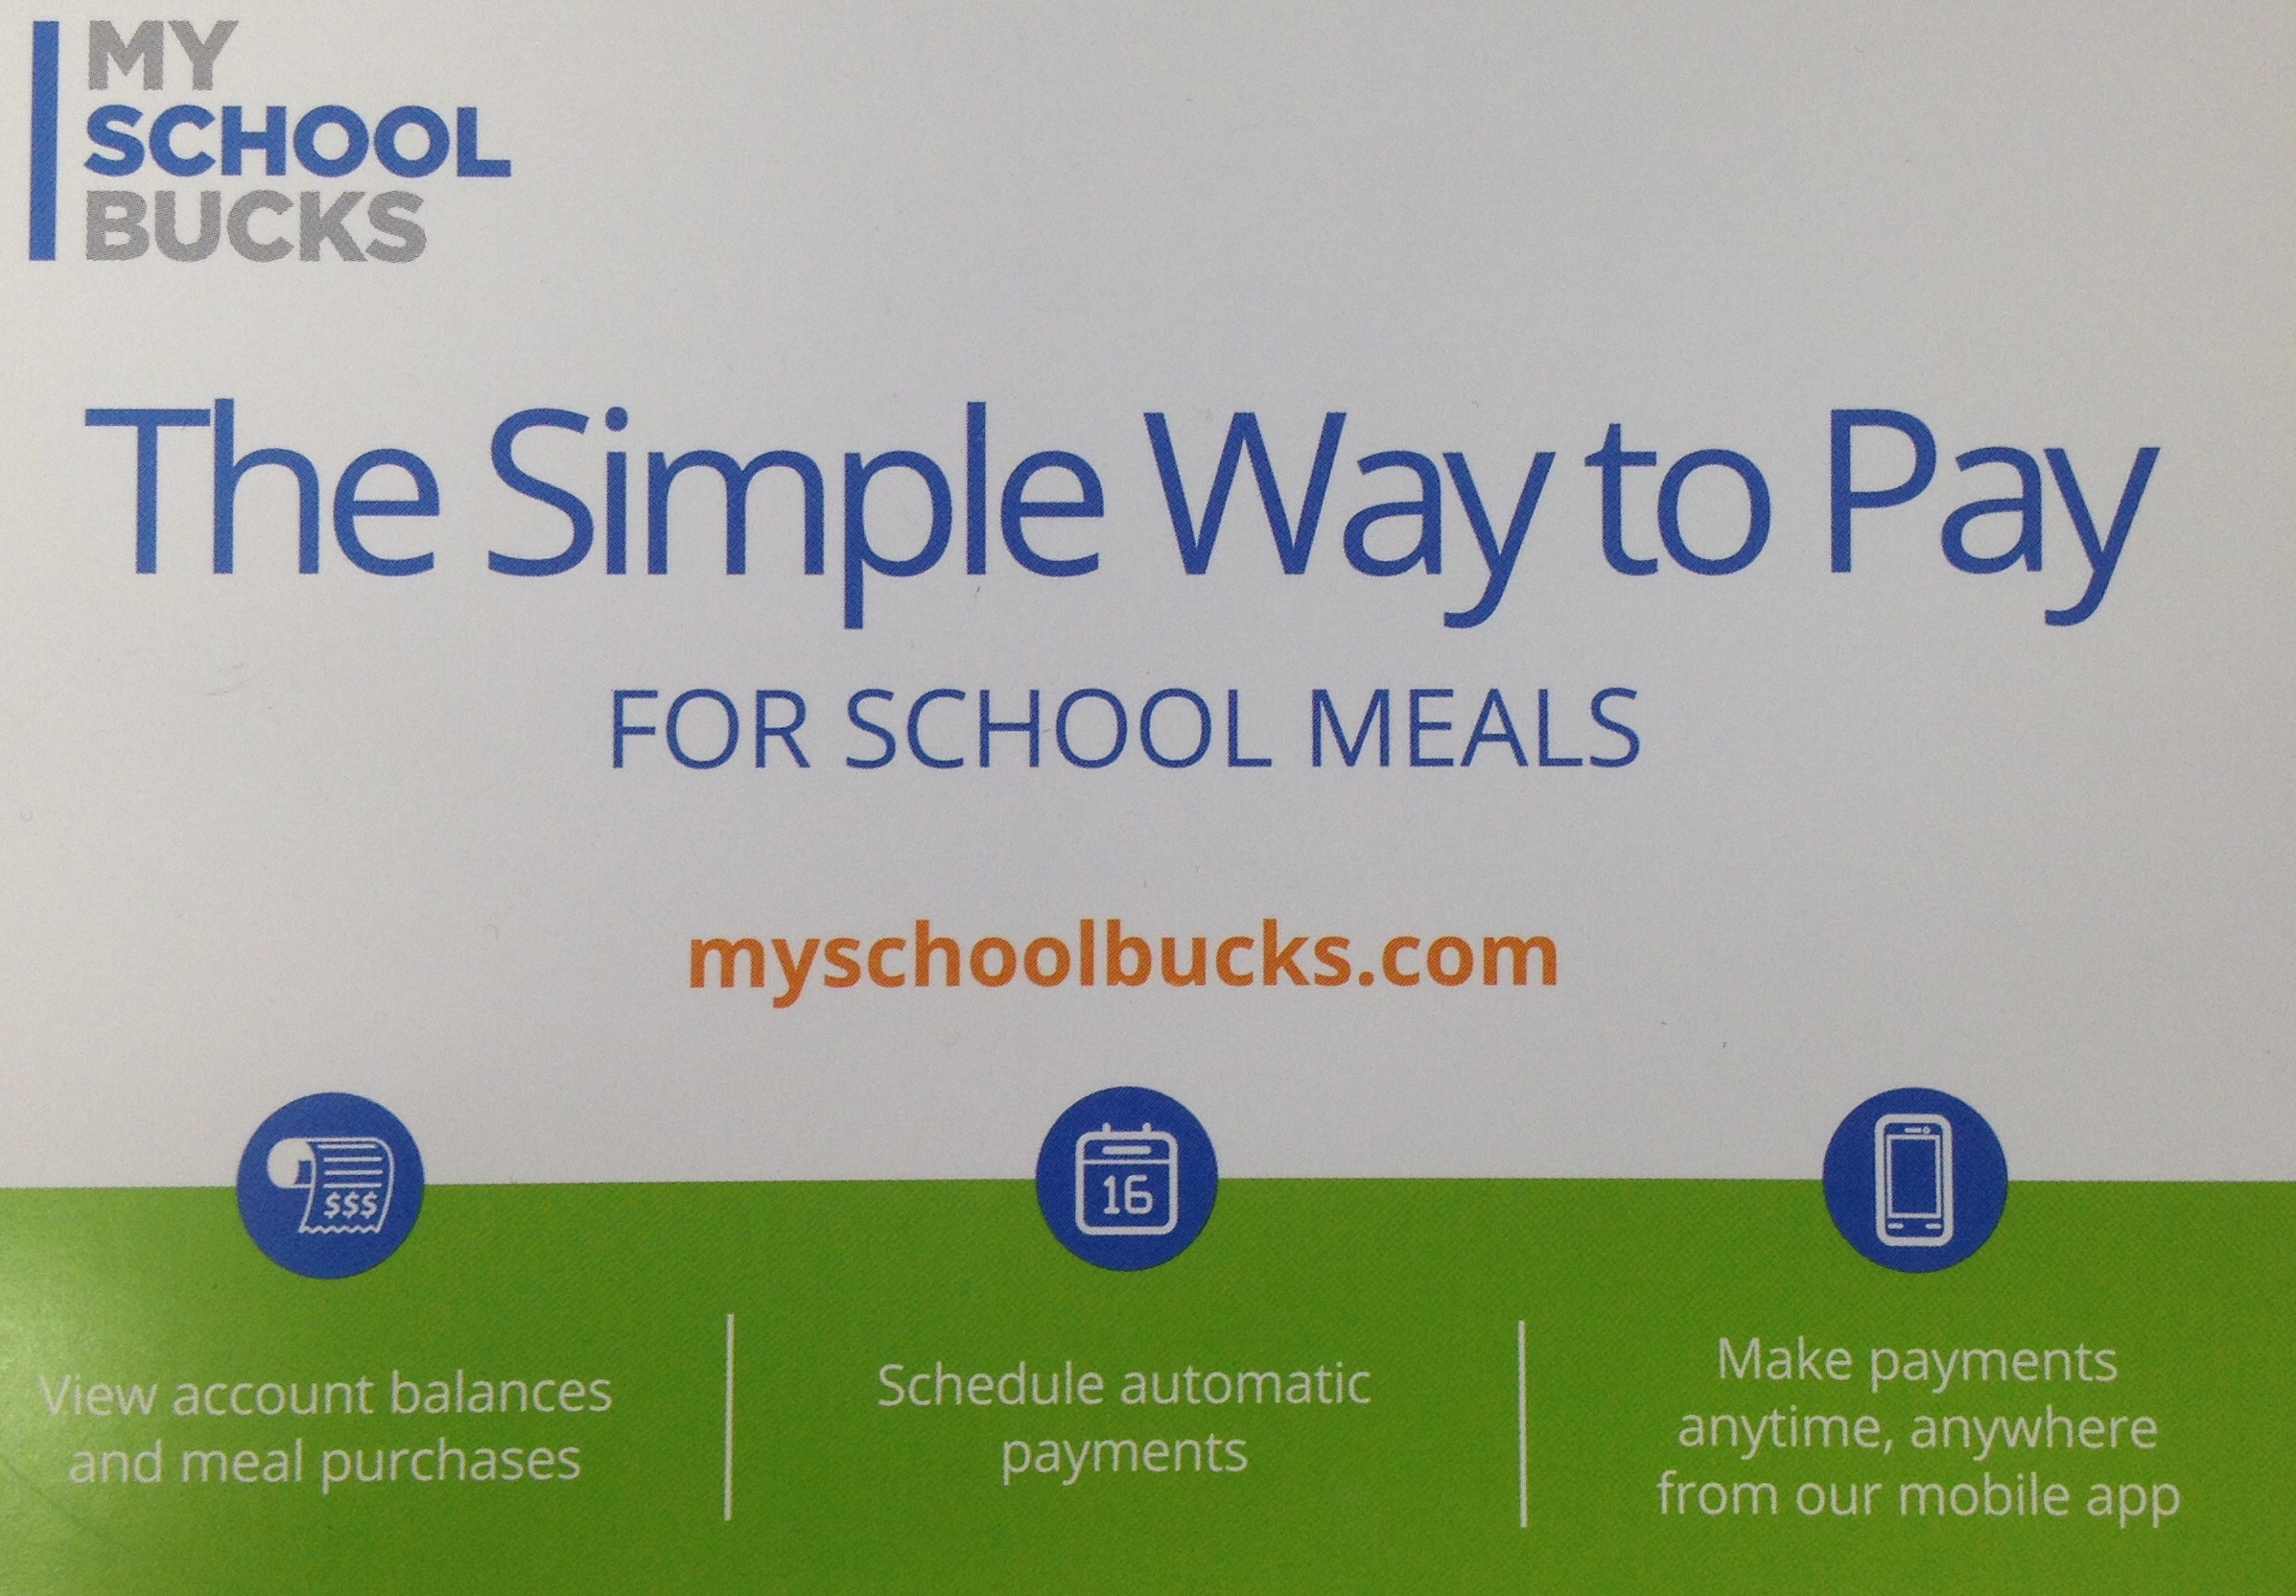 My School Bucks... the Simple Way to Pay